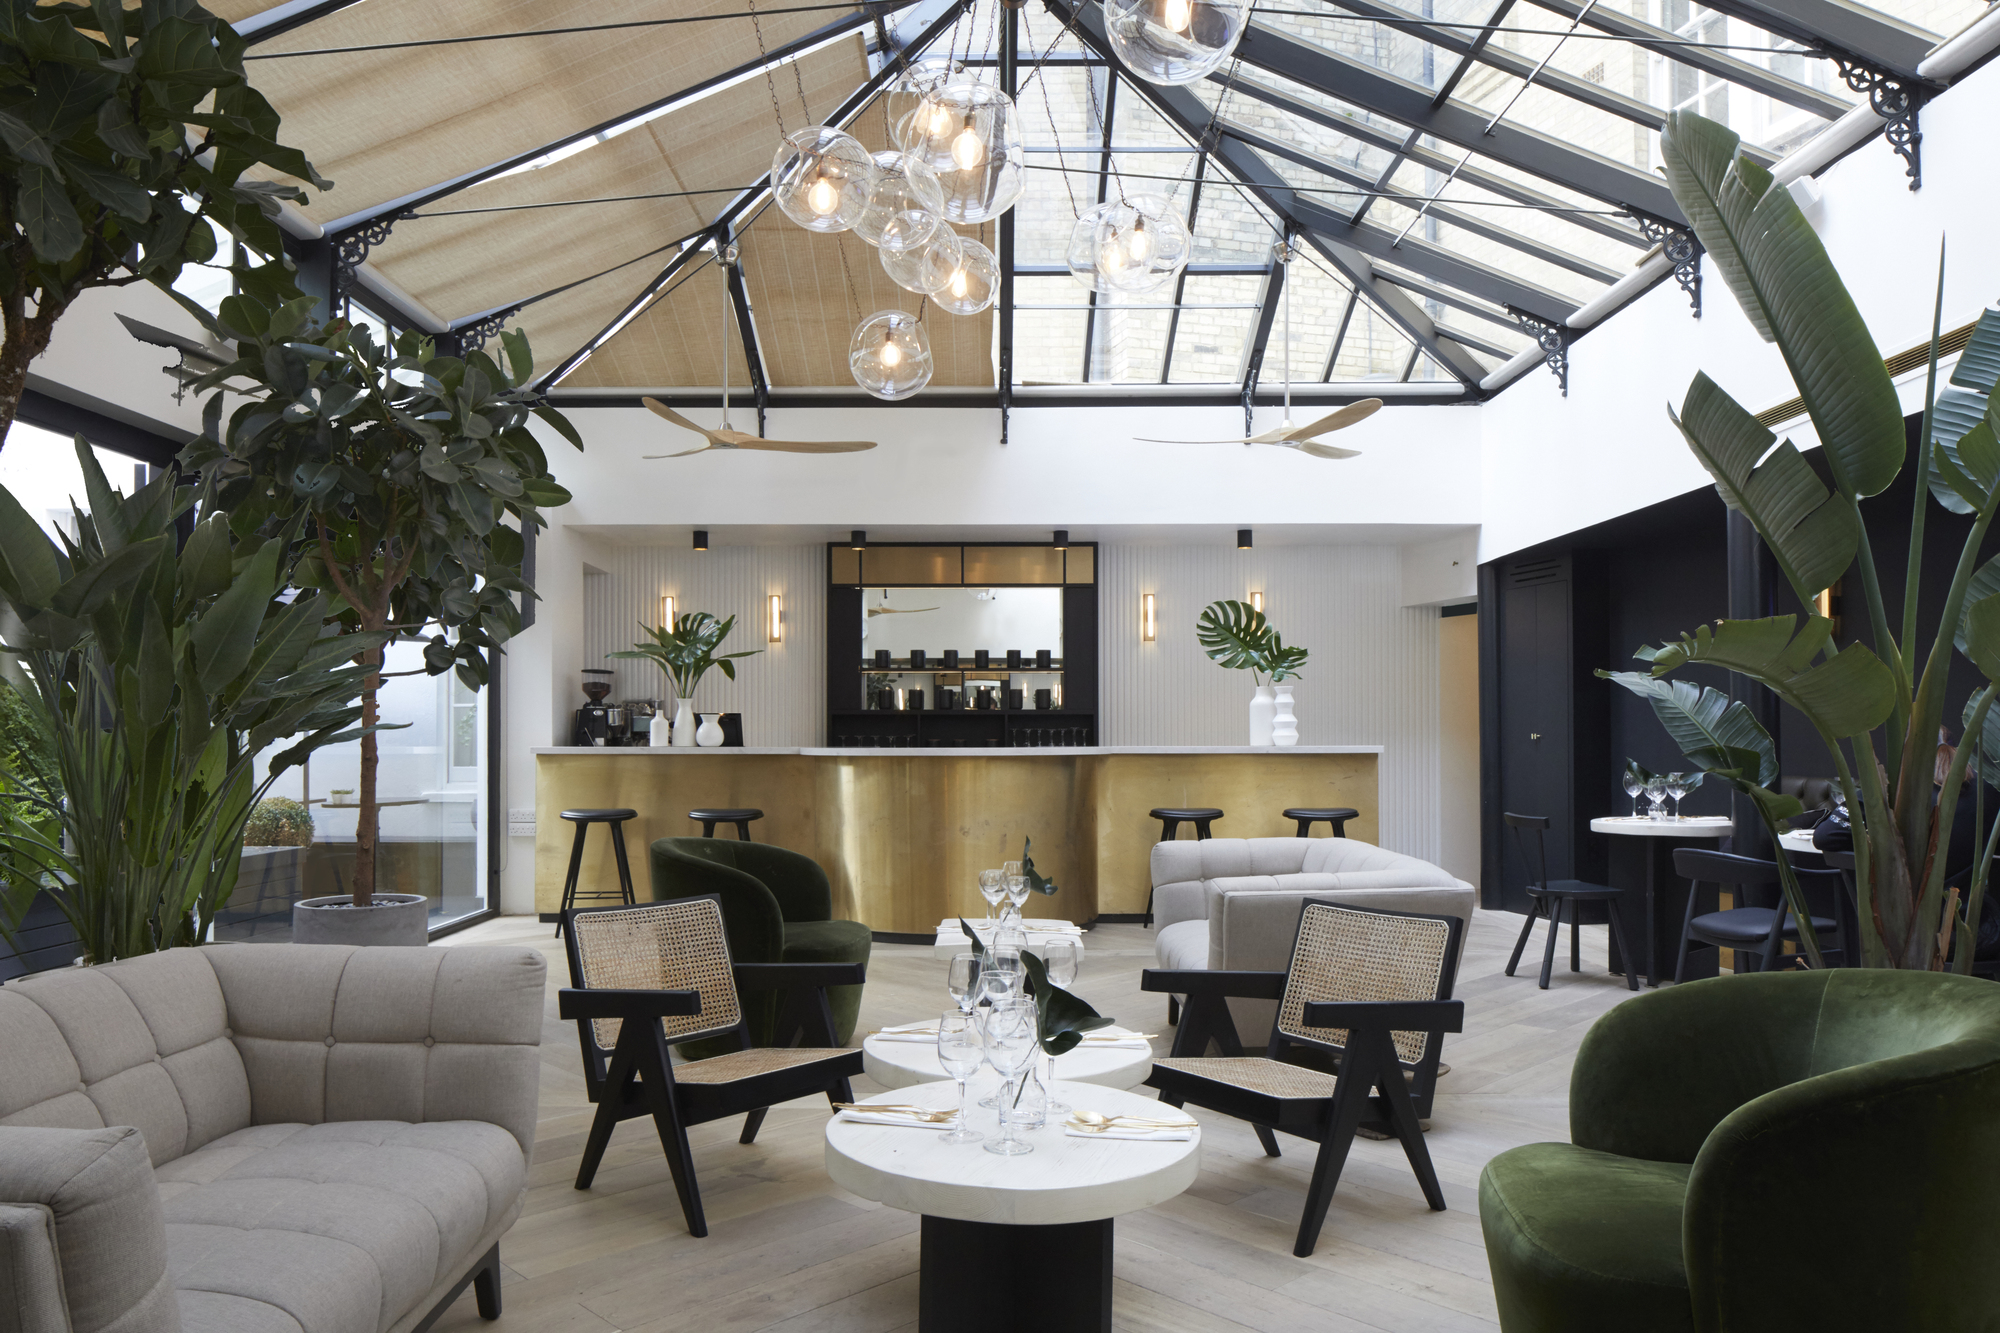 Mychelsea boutique hotel design haus liberty archdaily for Design hotel london